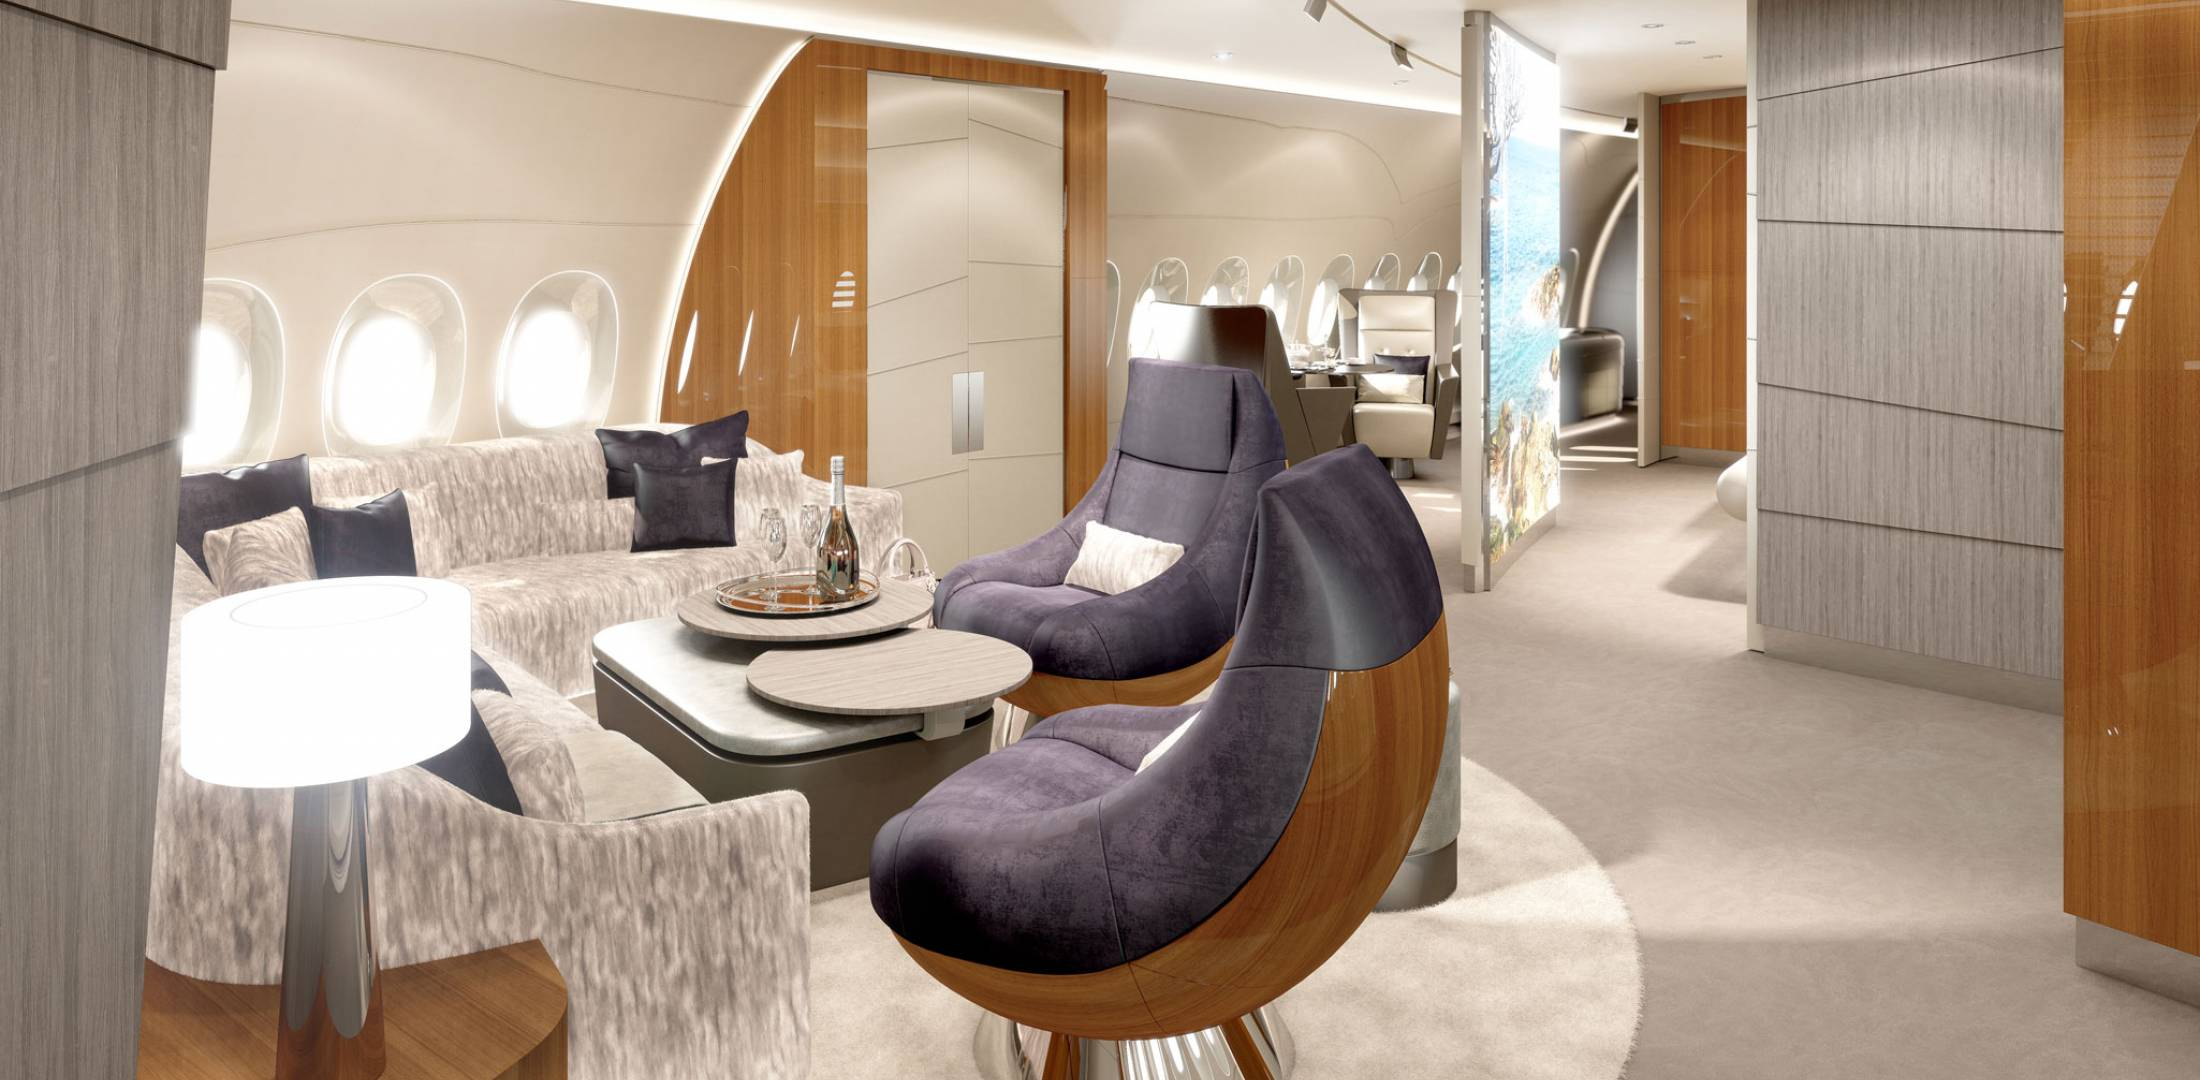 Lufthansa Technik S Home Interior Concept Starts With The Realization That Pengers On Vip Airbus A350s Have A Lifestyle Combines Family Travel